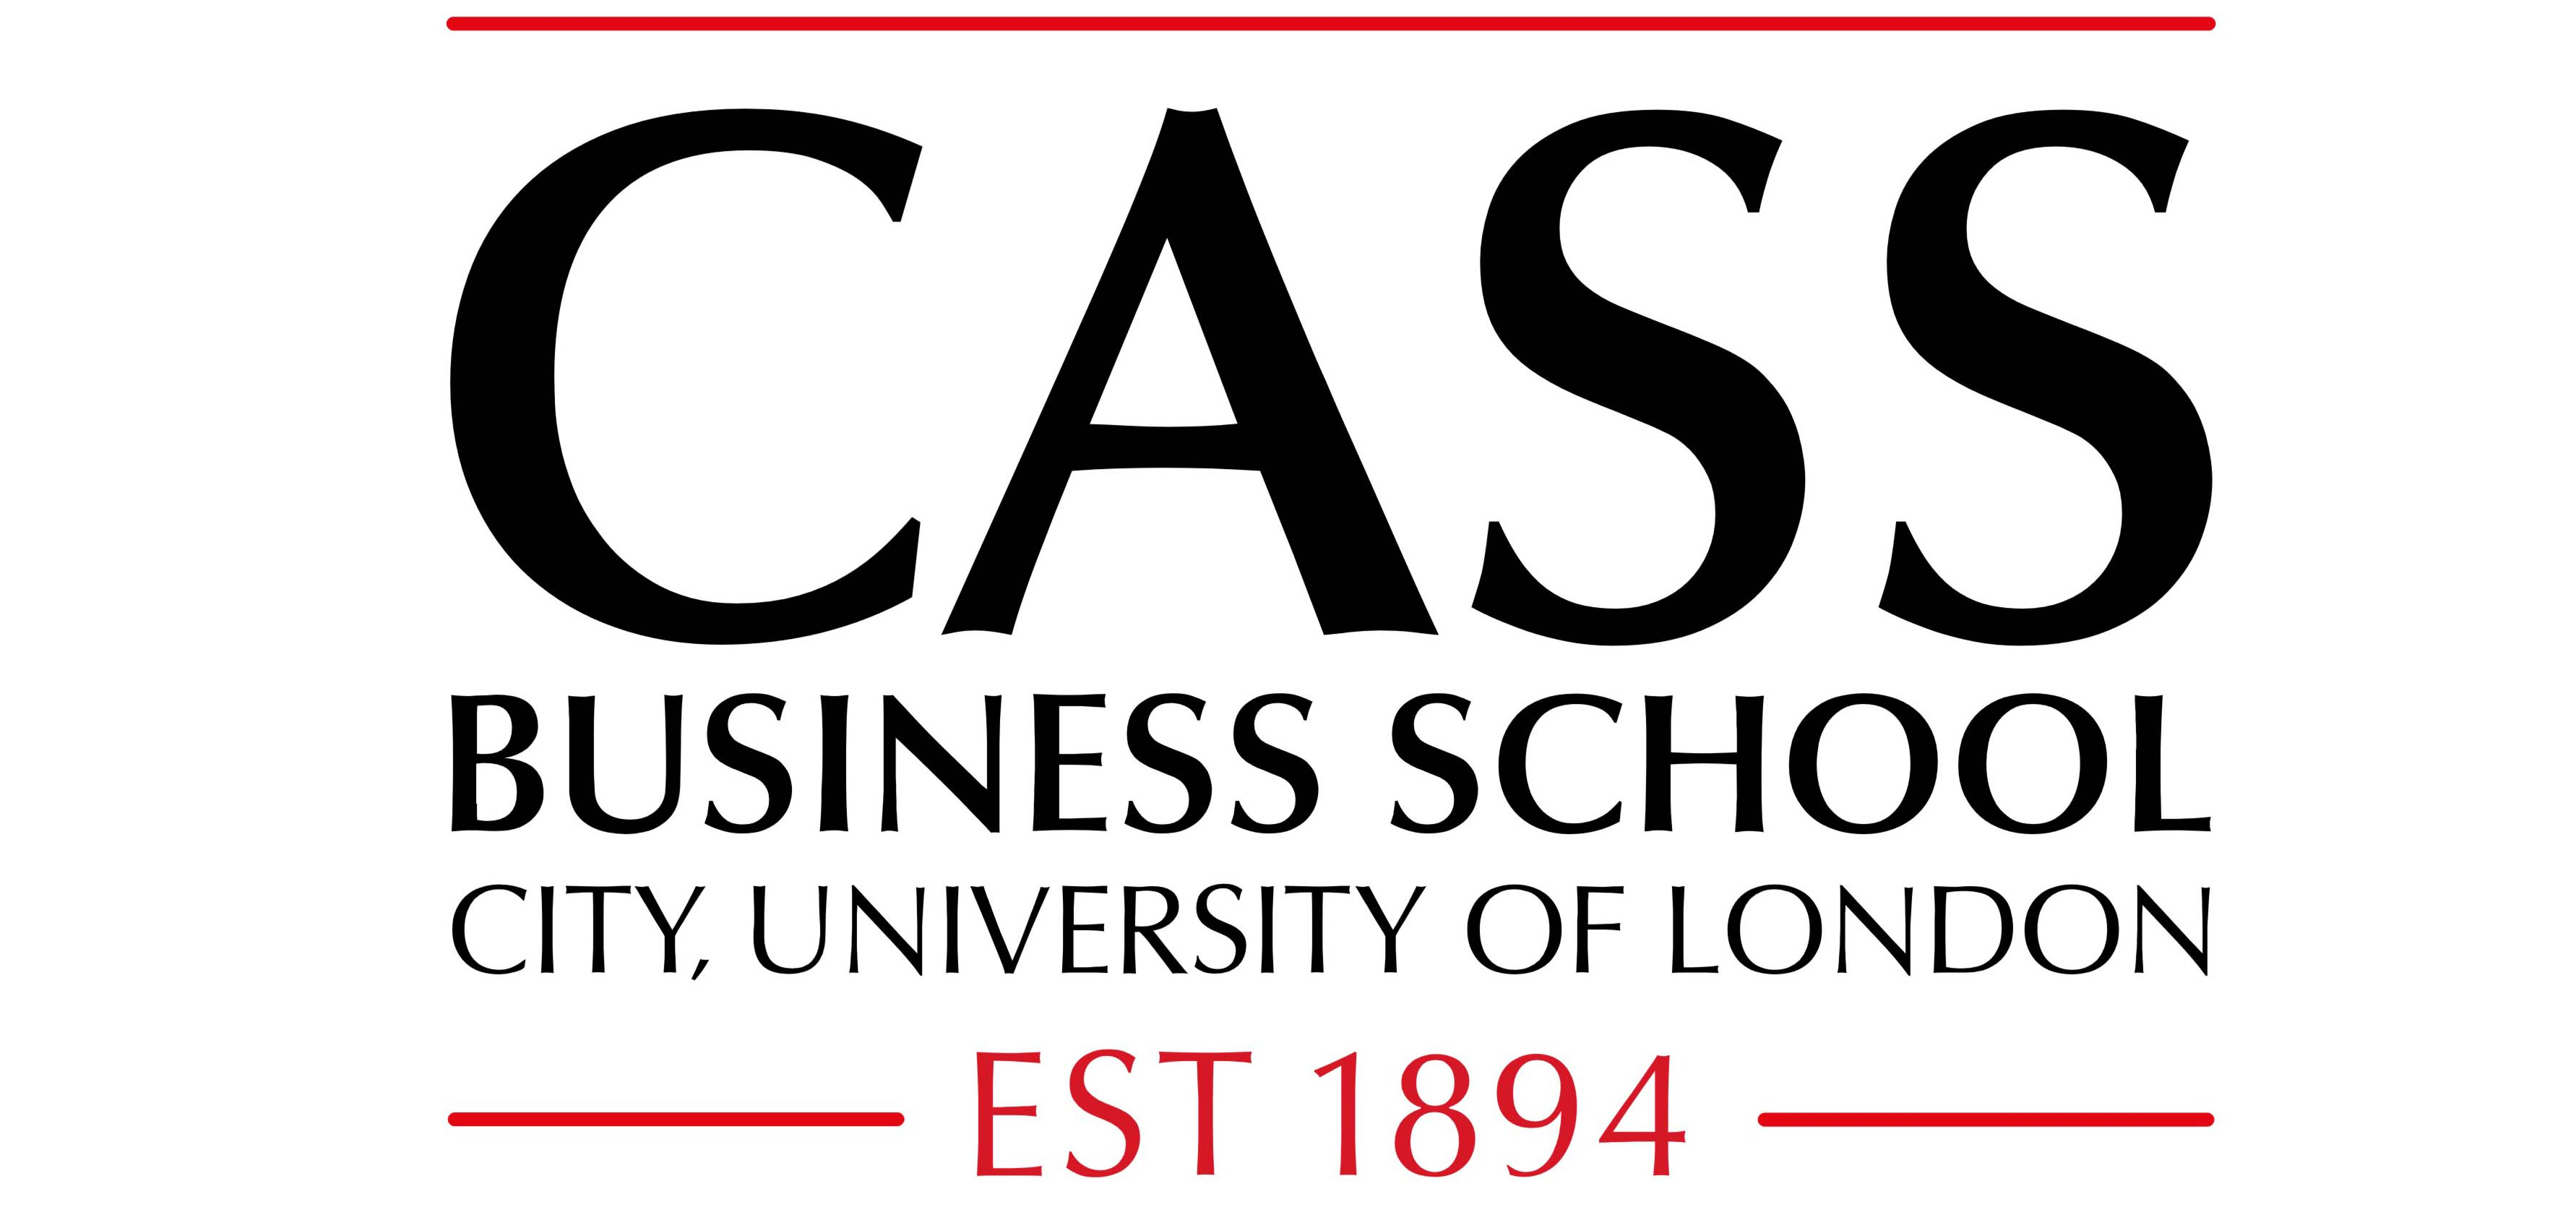 The Business School (formerly known as CASS)